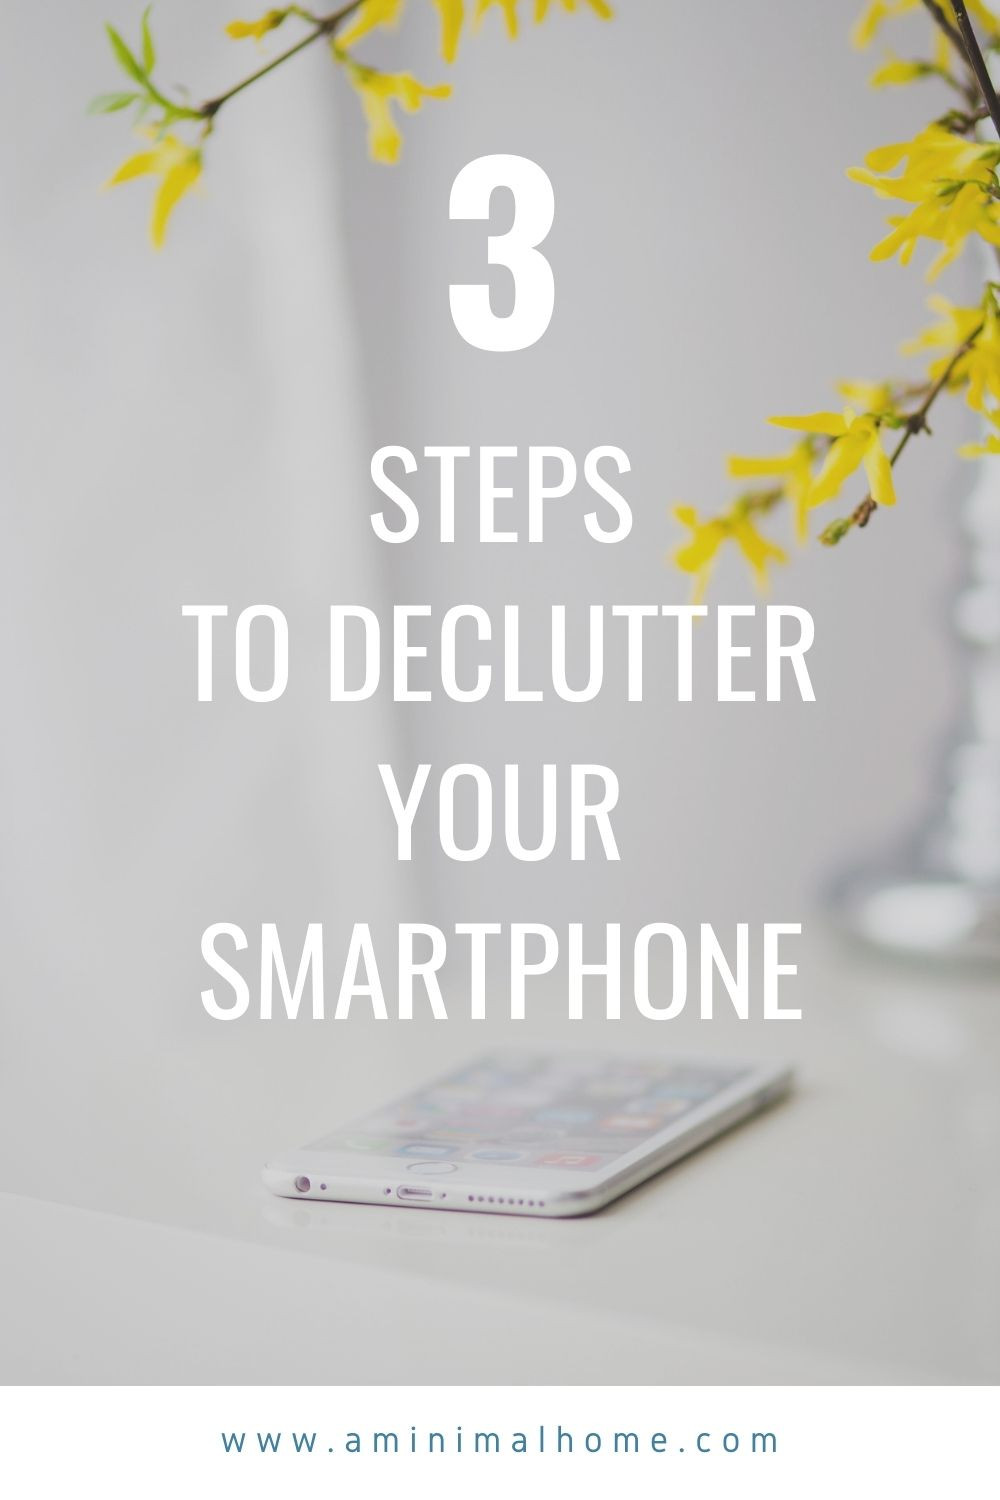 3 steps to declutter your phone